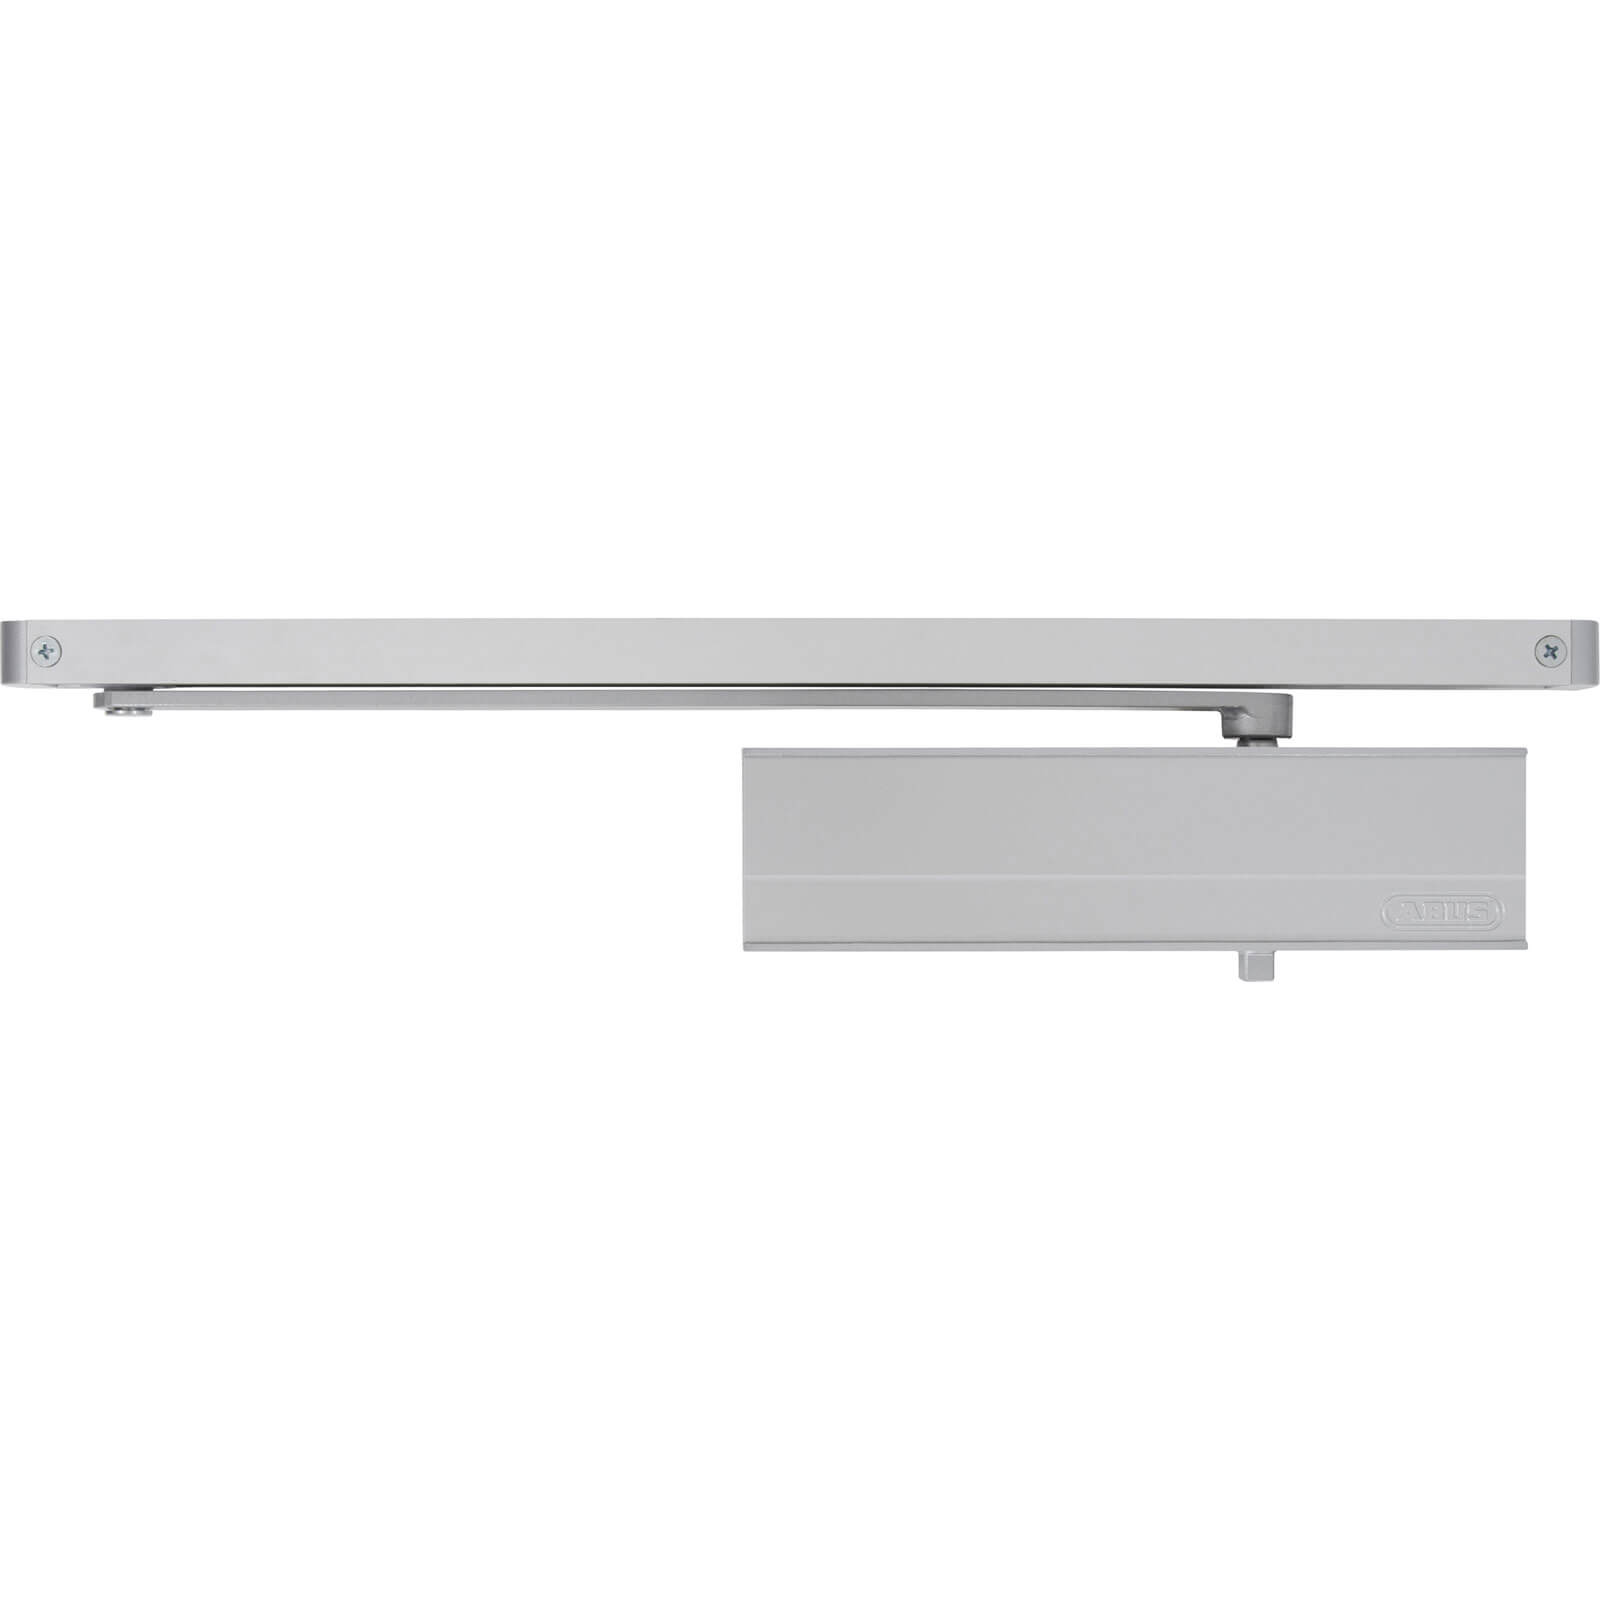 Image of Abus AC7303 S Door Closer 60kg